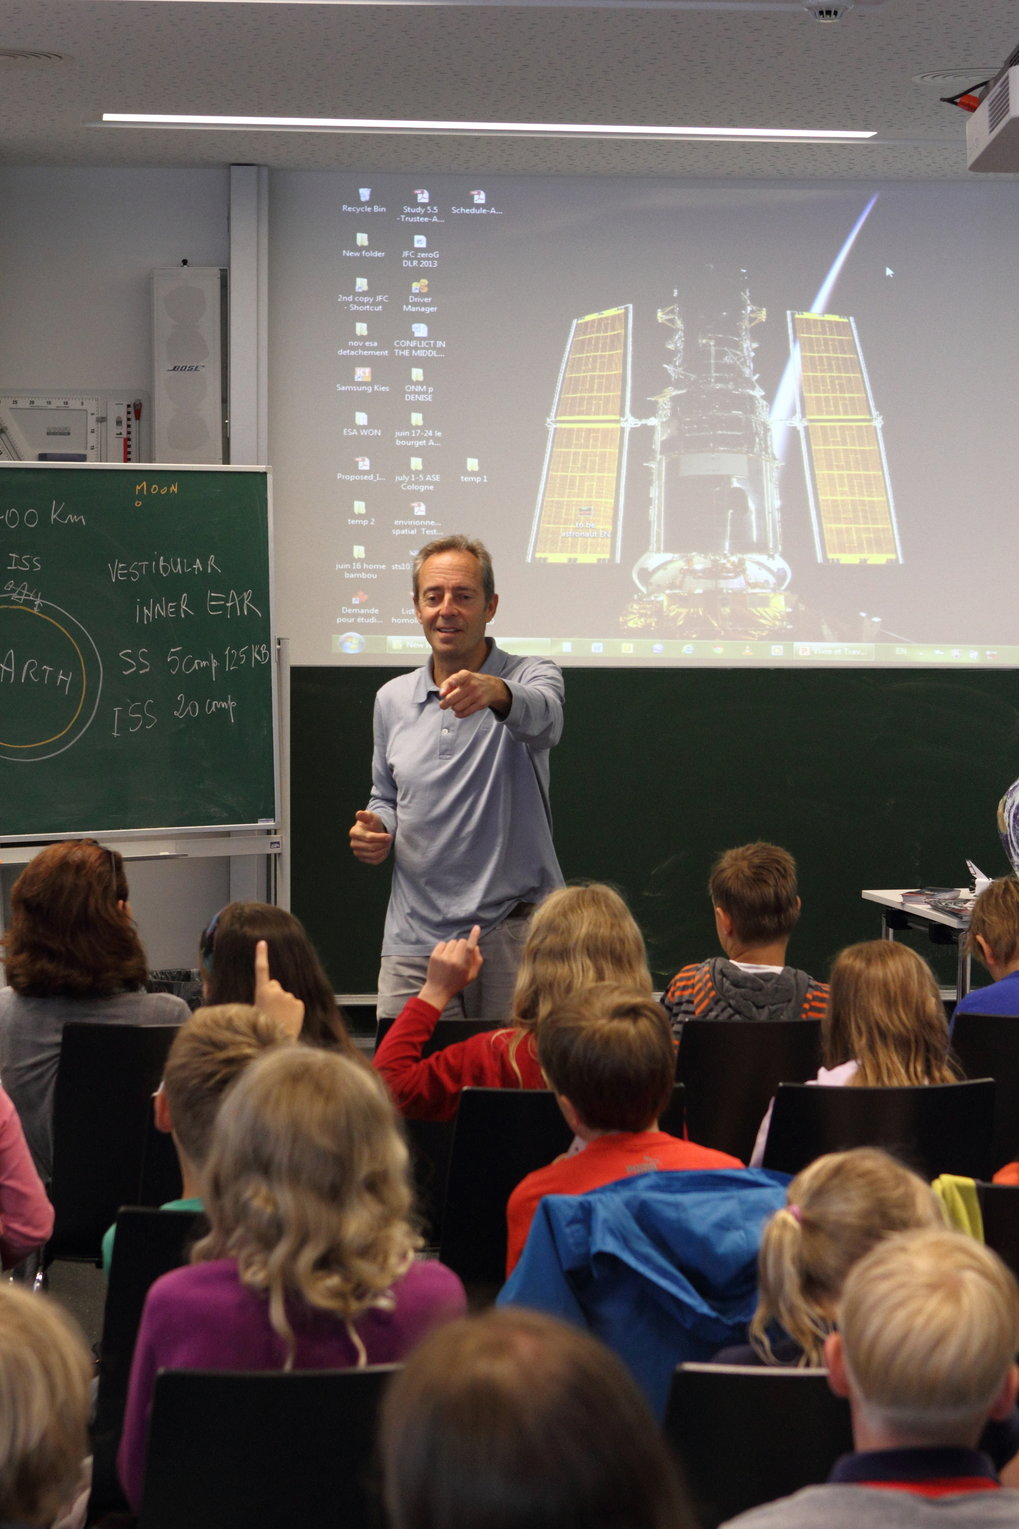 Event for elementary school children in one of the workshop rooms of Haus der Astronomie: ESA astronaut Jean-François Clervoy answers questions about his service mission to the Hubble Space Telescope. The event was part of HdA's